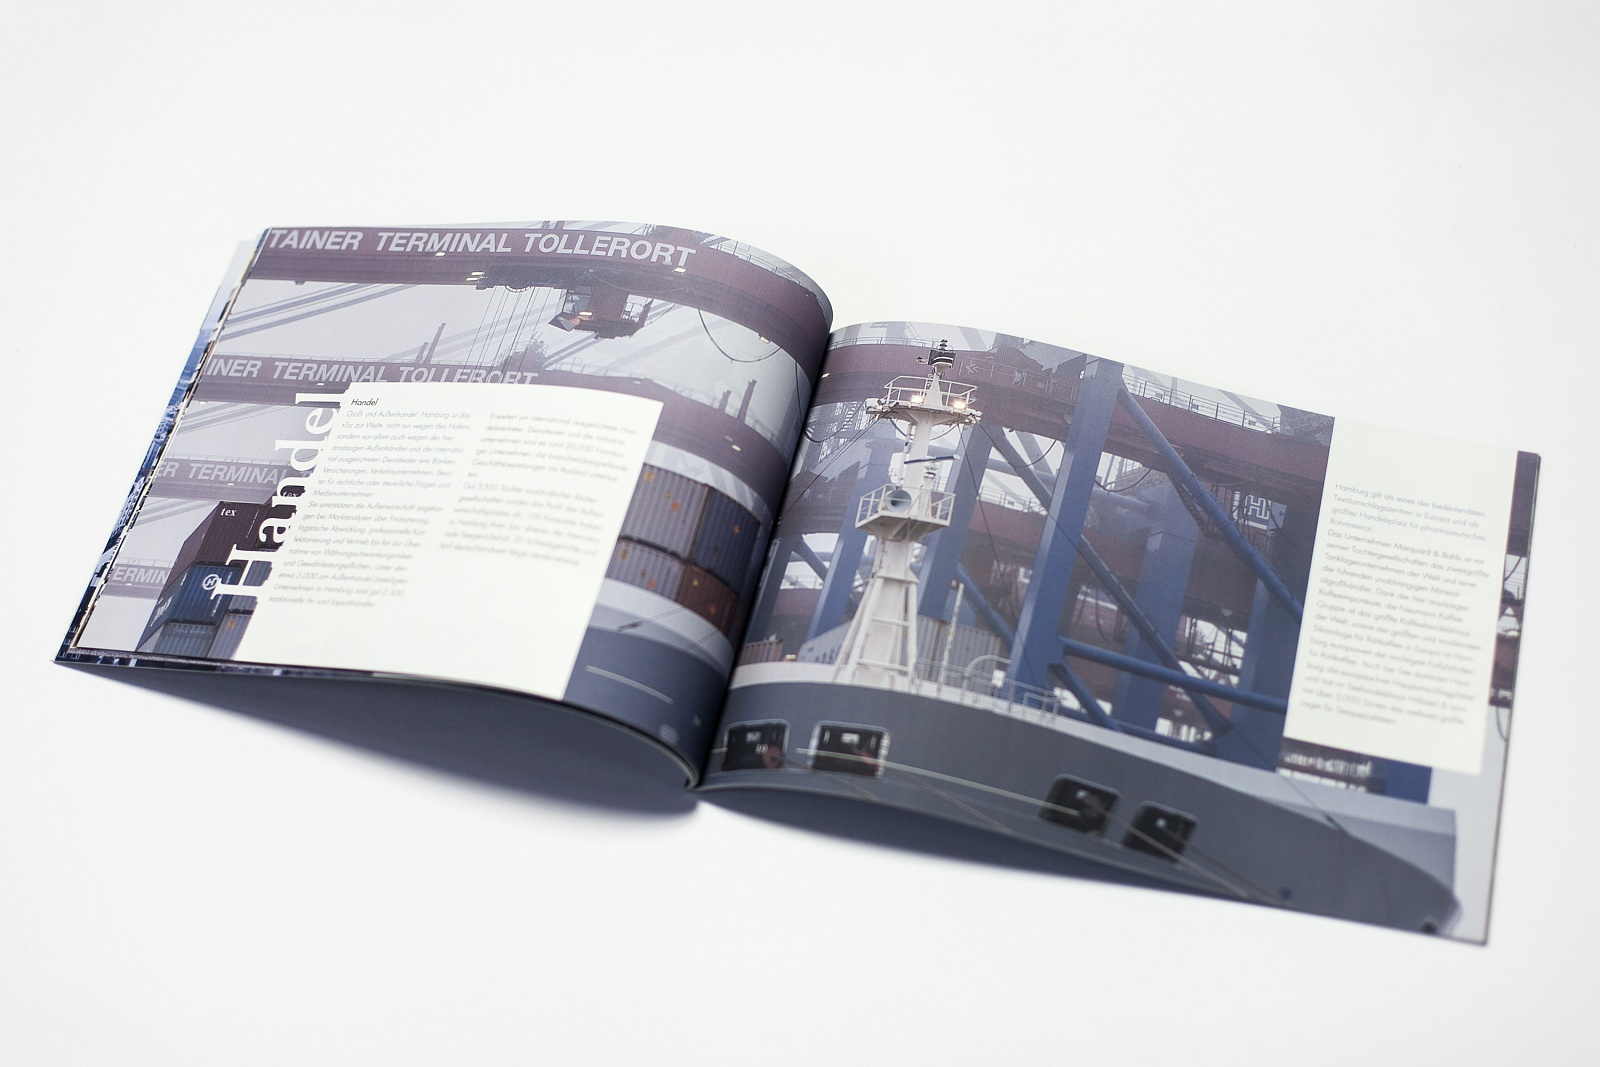 open brochure, showing two text fields and a large image of cranes loading a huge transport ship